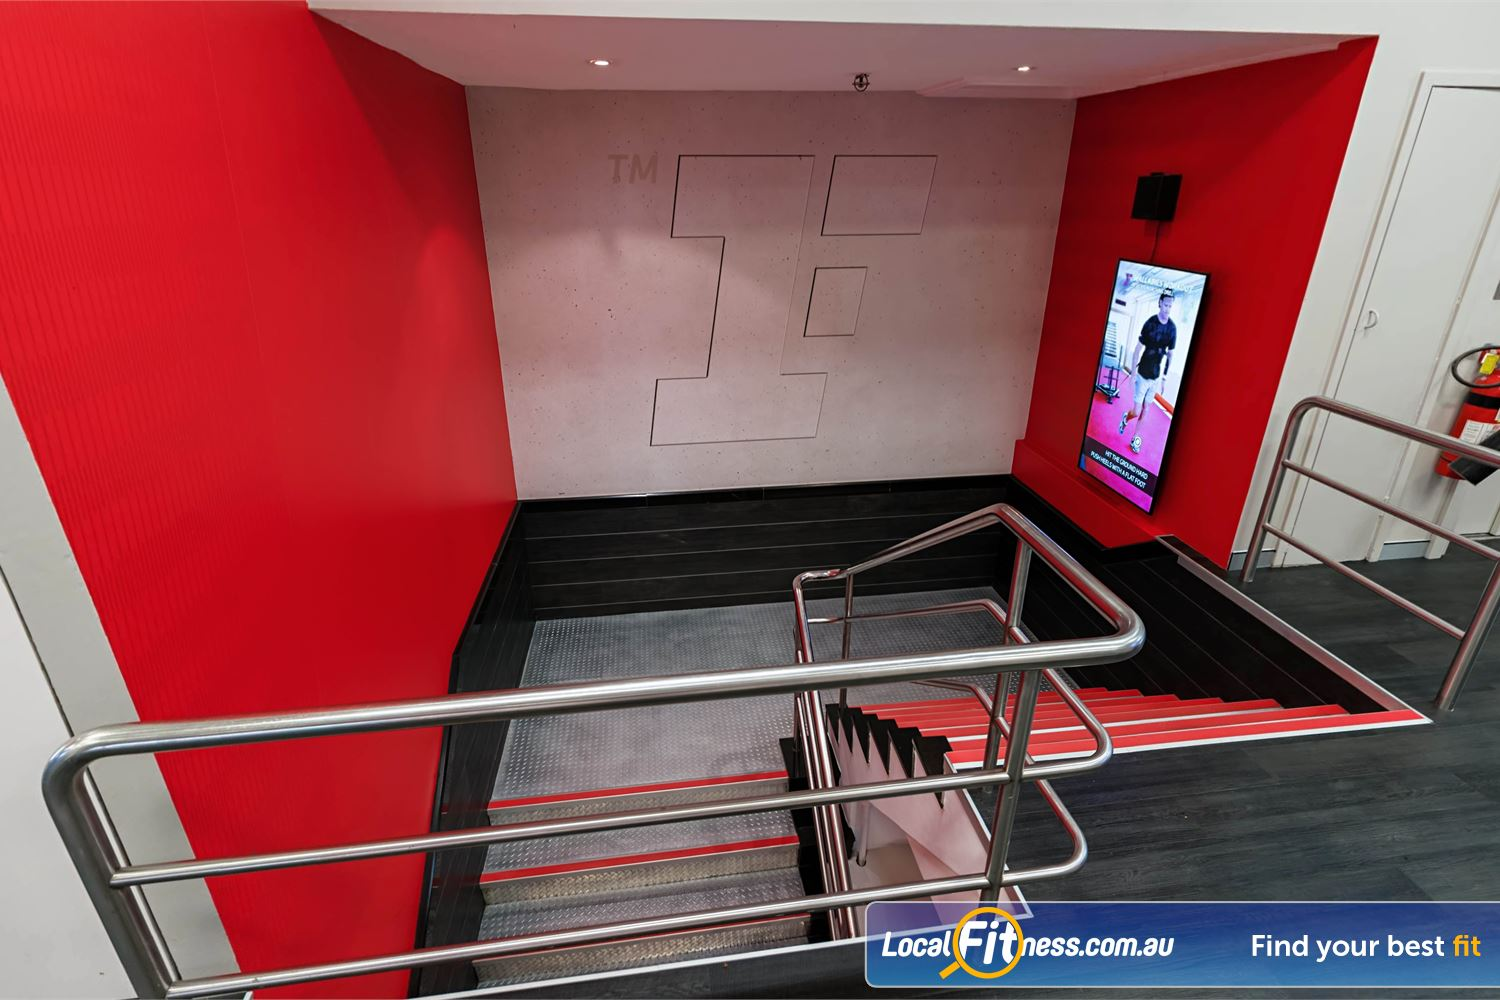 Fitness First Platinum Spring St Near Charing Cross Our multi-level Bondi gym is spread over 3 bright and spacious levels.